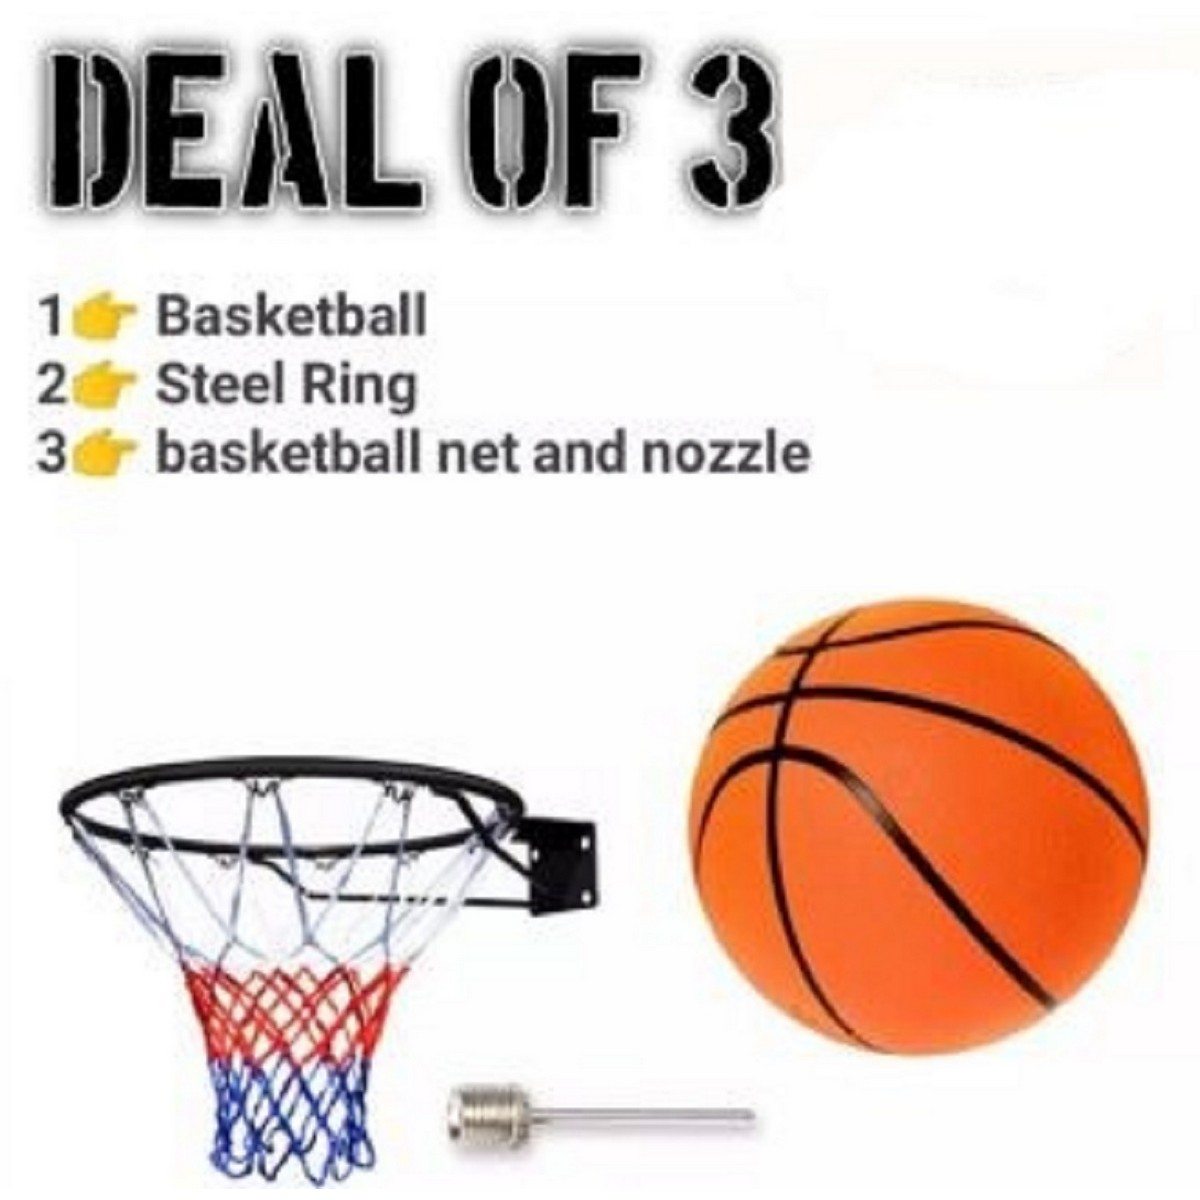 Basket Ball With free Net and steal ring